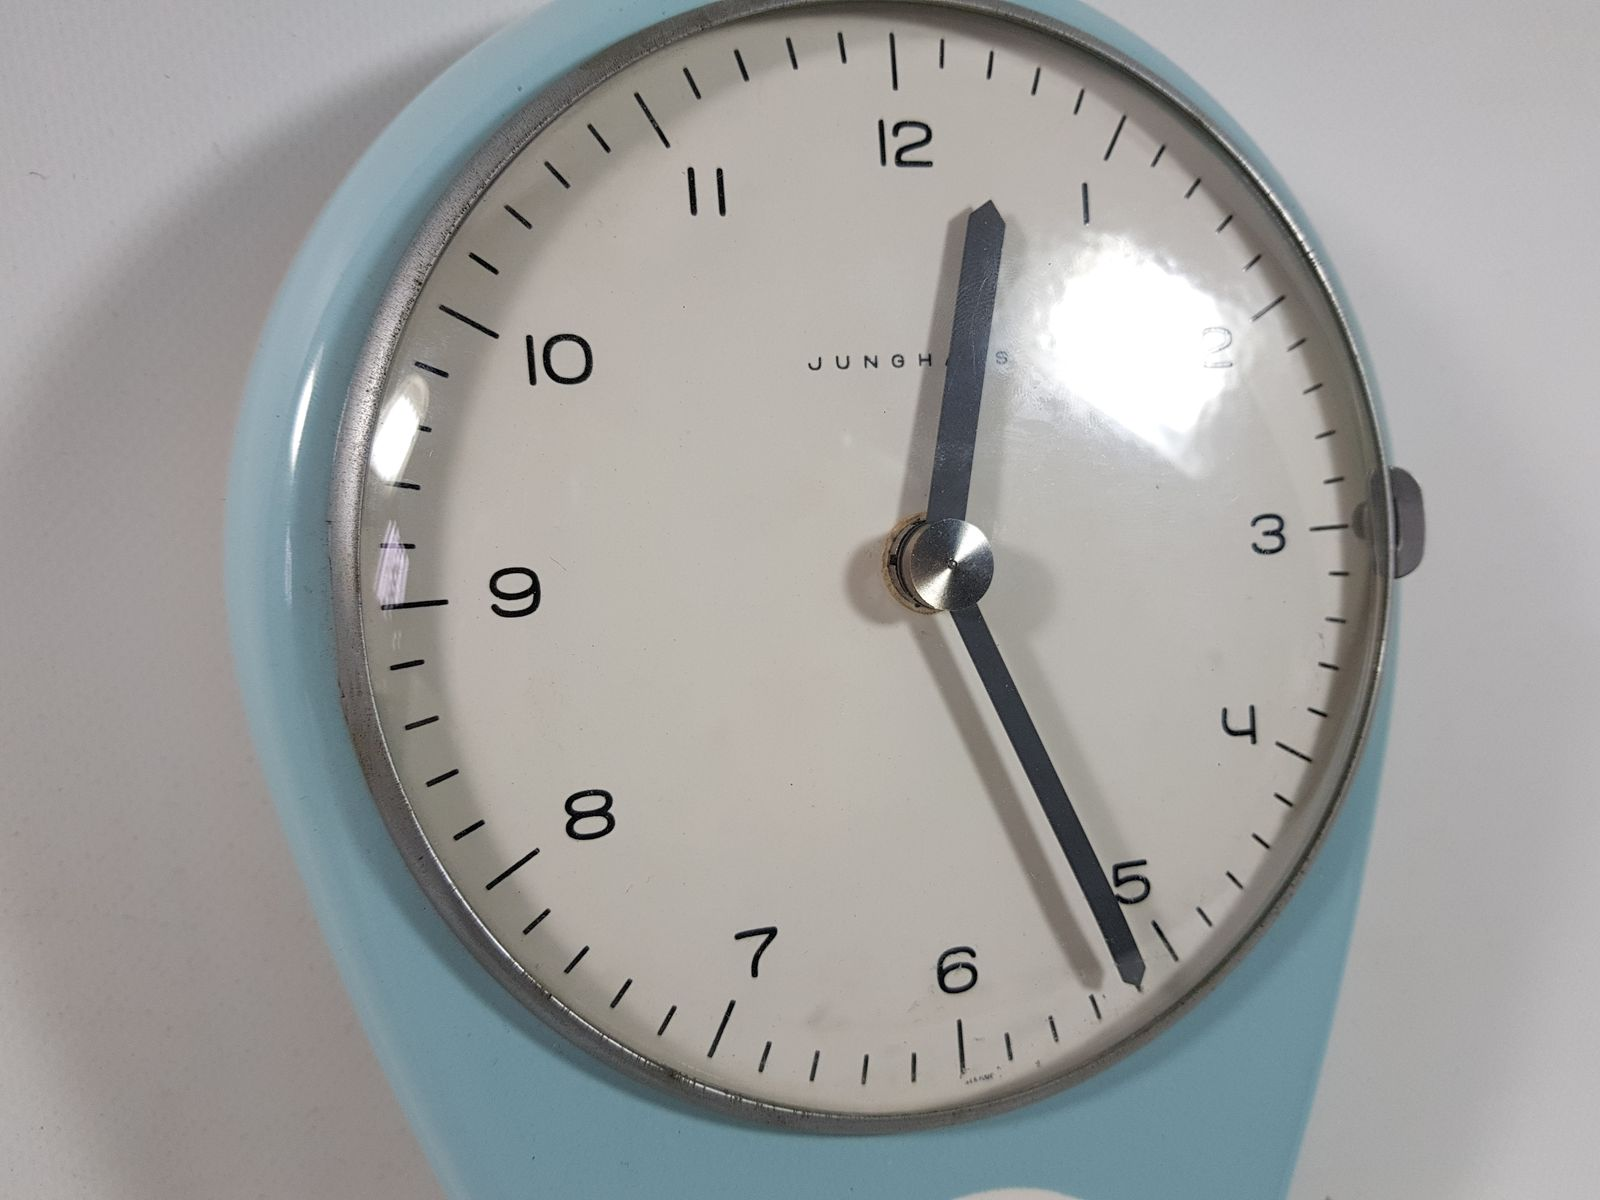 Vintage Kitchen Clock by Max Bill for Junghans Meister for sale at